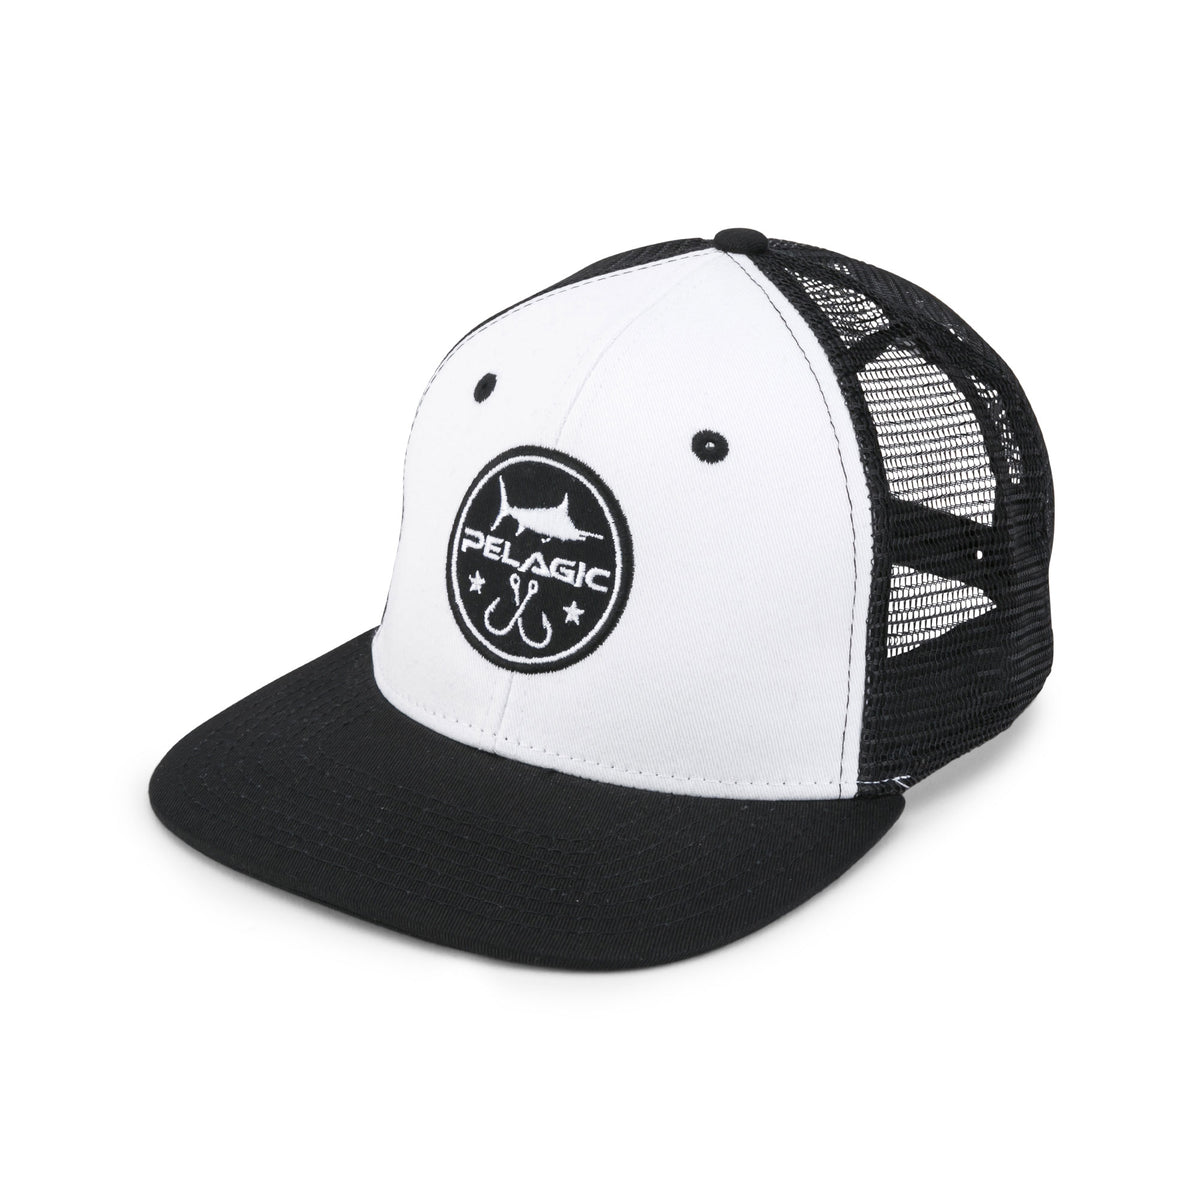 Icon Snapback Fishing Hat Big Image - 1